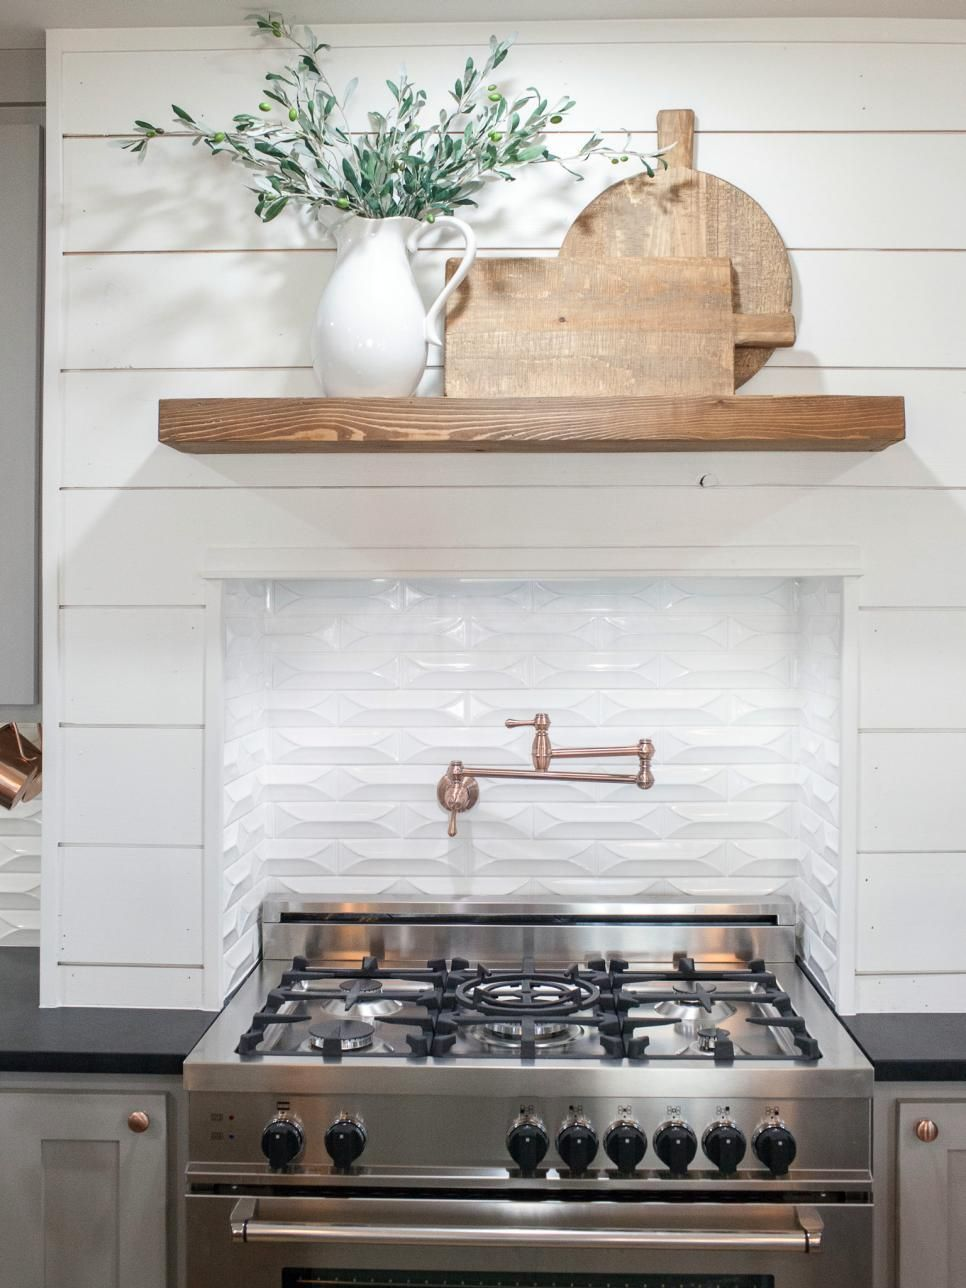 Chip and joanna gaines transform a barn into a rustic home perfect for - Chip And Joanna Gaines May Be Miracle Workers But They Simply Can T Do Everything So When They Opened Magnolia House B